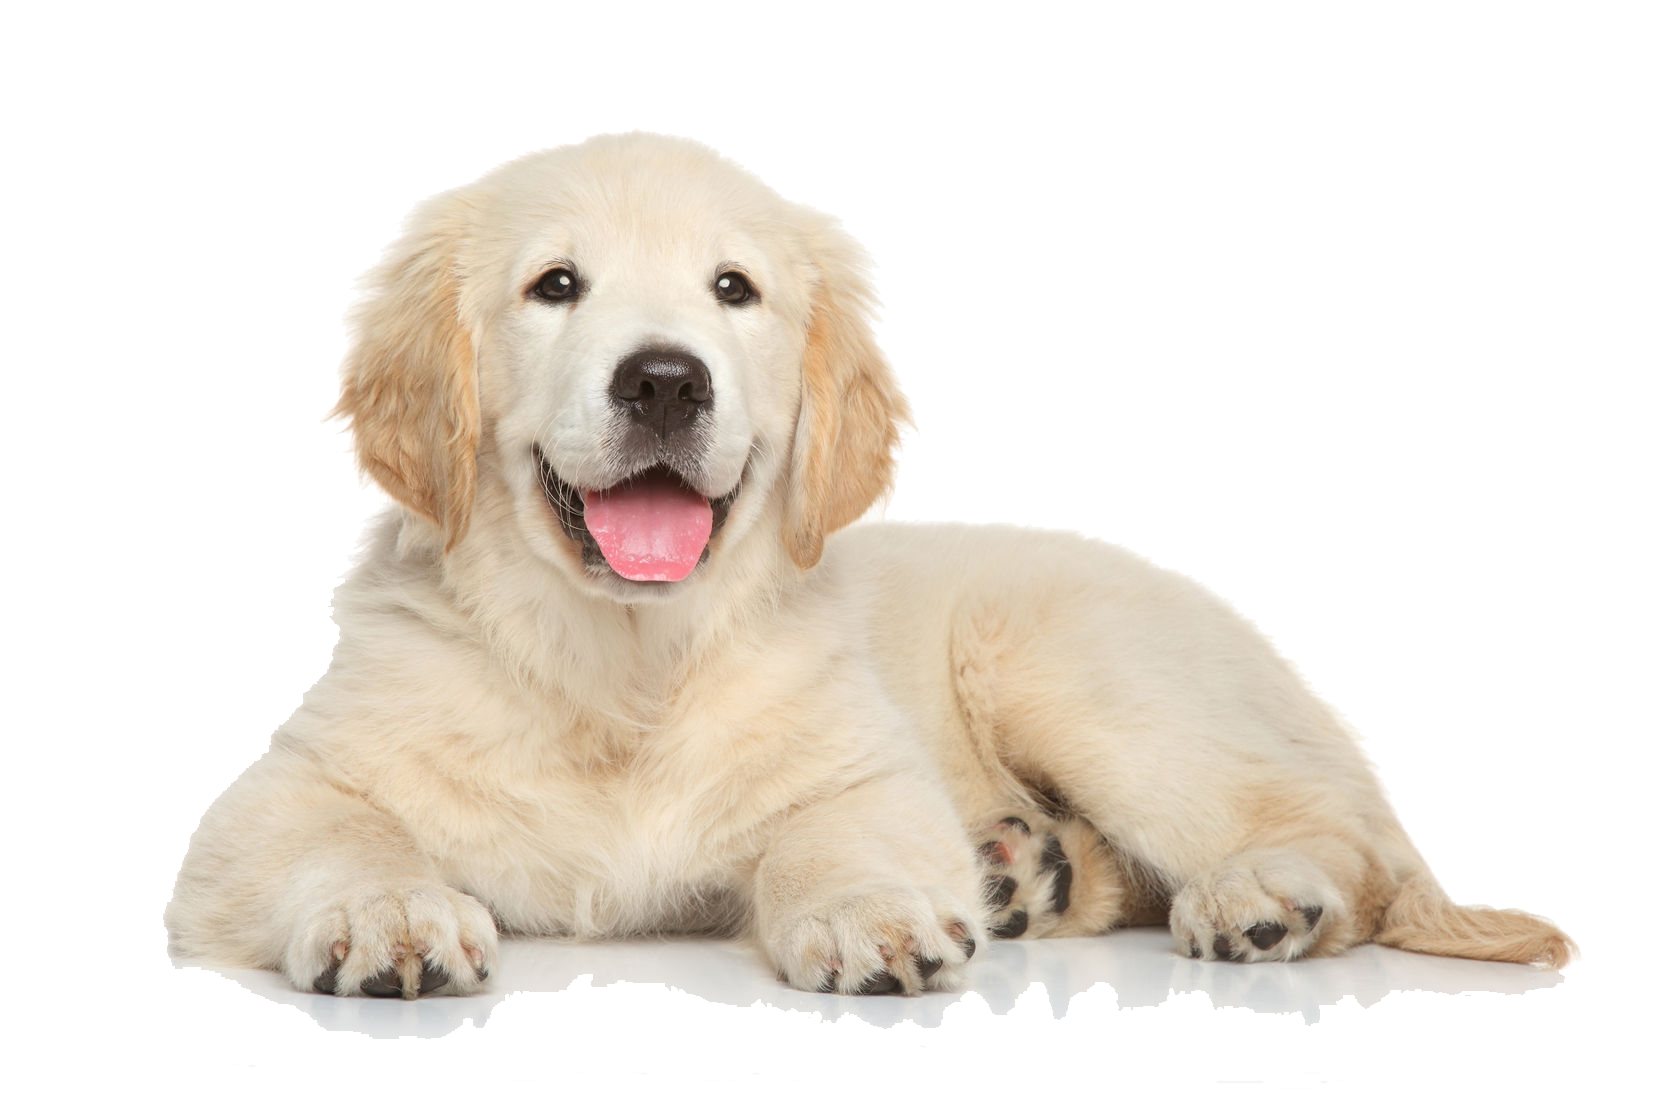 Puppy png. Images transparent free download